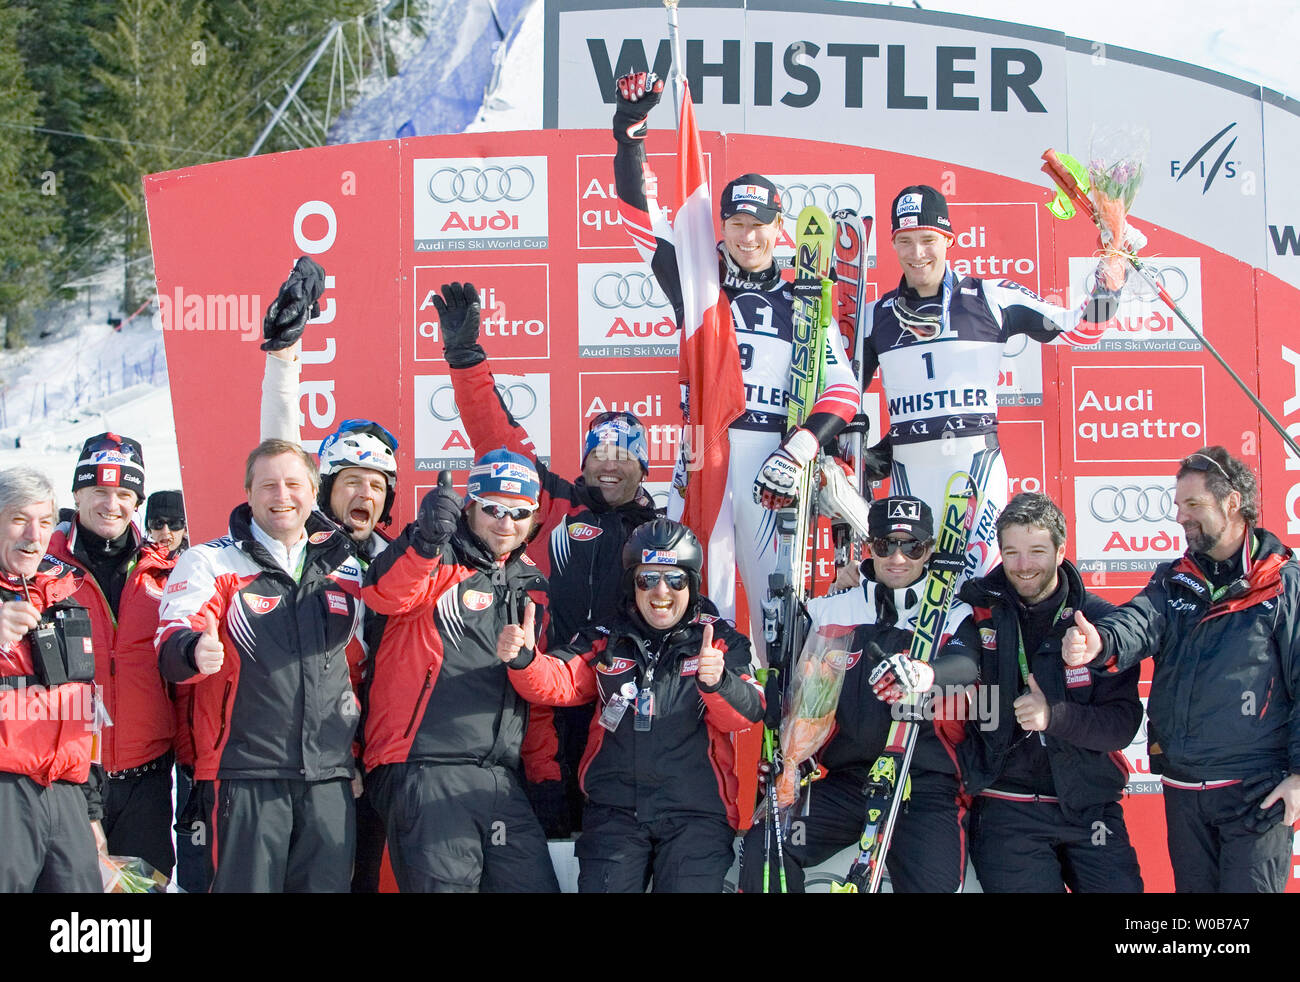 Celebrating on the podium are first place Hannes Reichelt from Austria (top L) with third place teammate Benjamin Raich (top R), along with coaching staff and crew from the Austrian ski team in the men's Giant Slalom of Telus presents FIS World Cup Skiing at Whistler, British Columbia, February 23, 2008. The races are also testing conditions for alpine skiing events at Whistler for the 2010 Winter Olympics. (UPI Photo/Heinz Ruckemann) Stock Photo